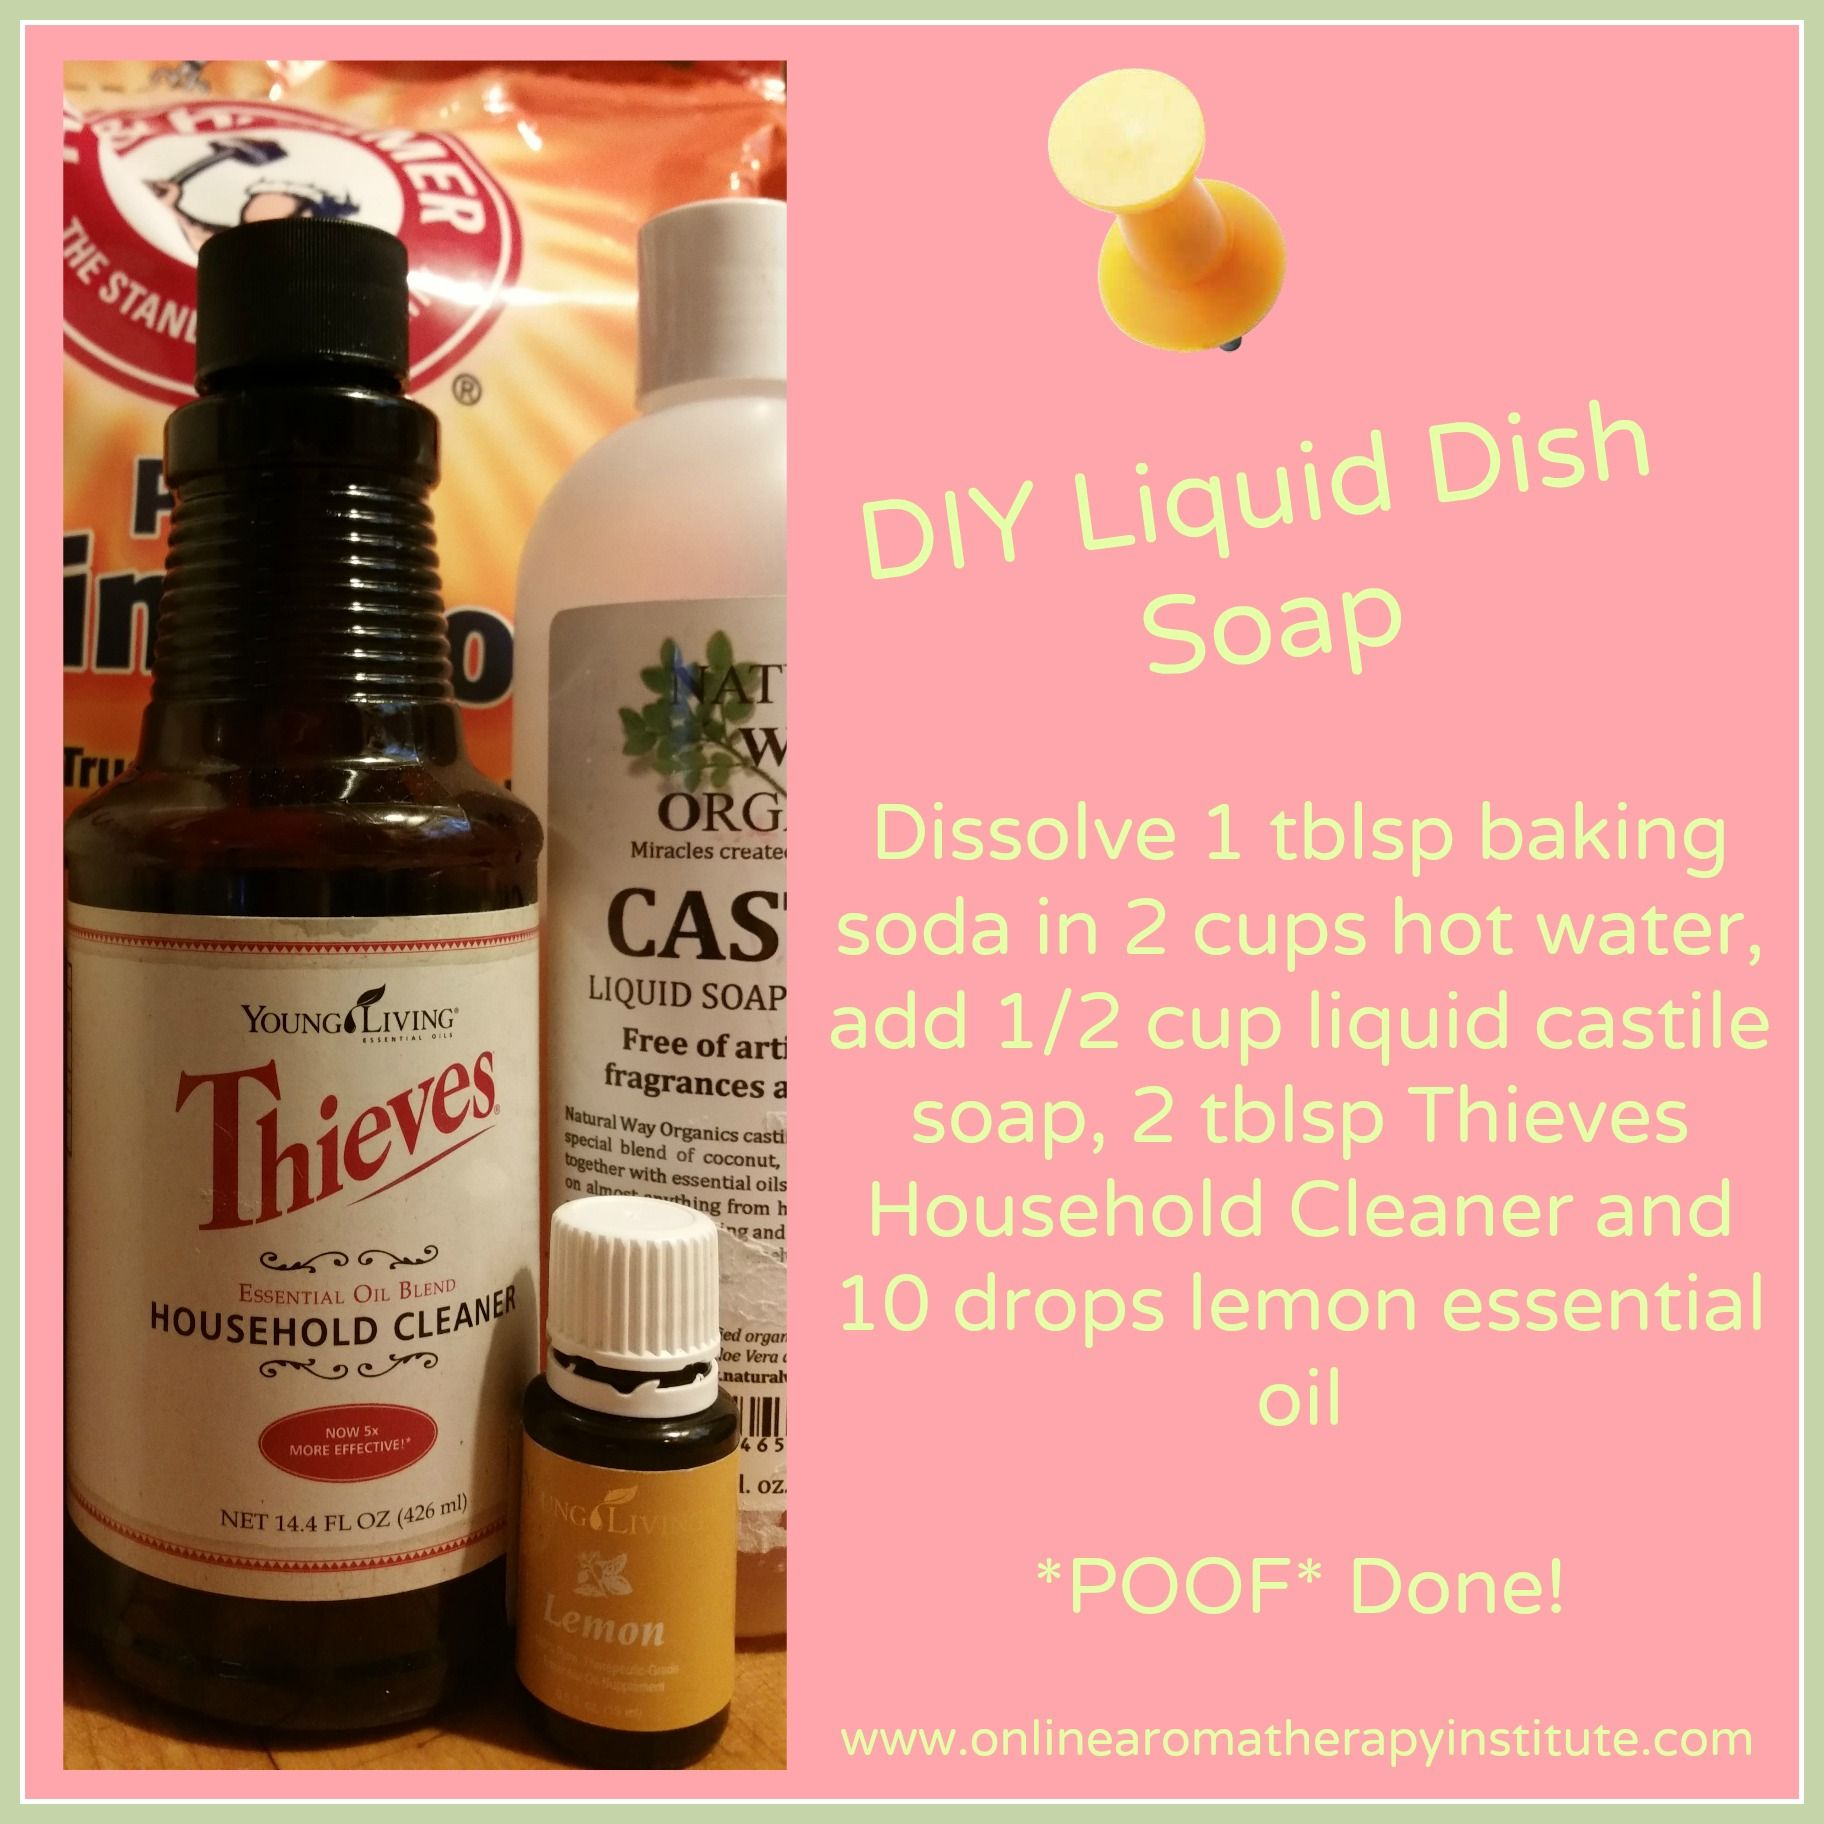 Watch How to Make Homemade Dishwasher Soap video